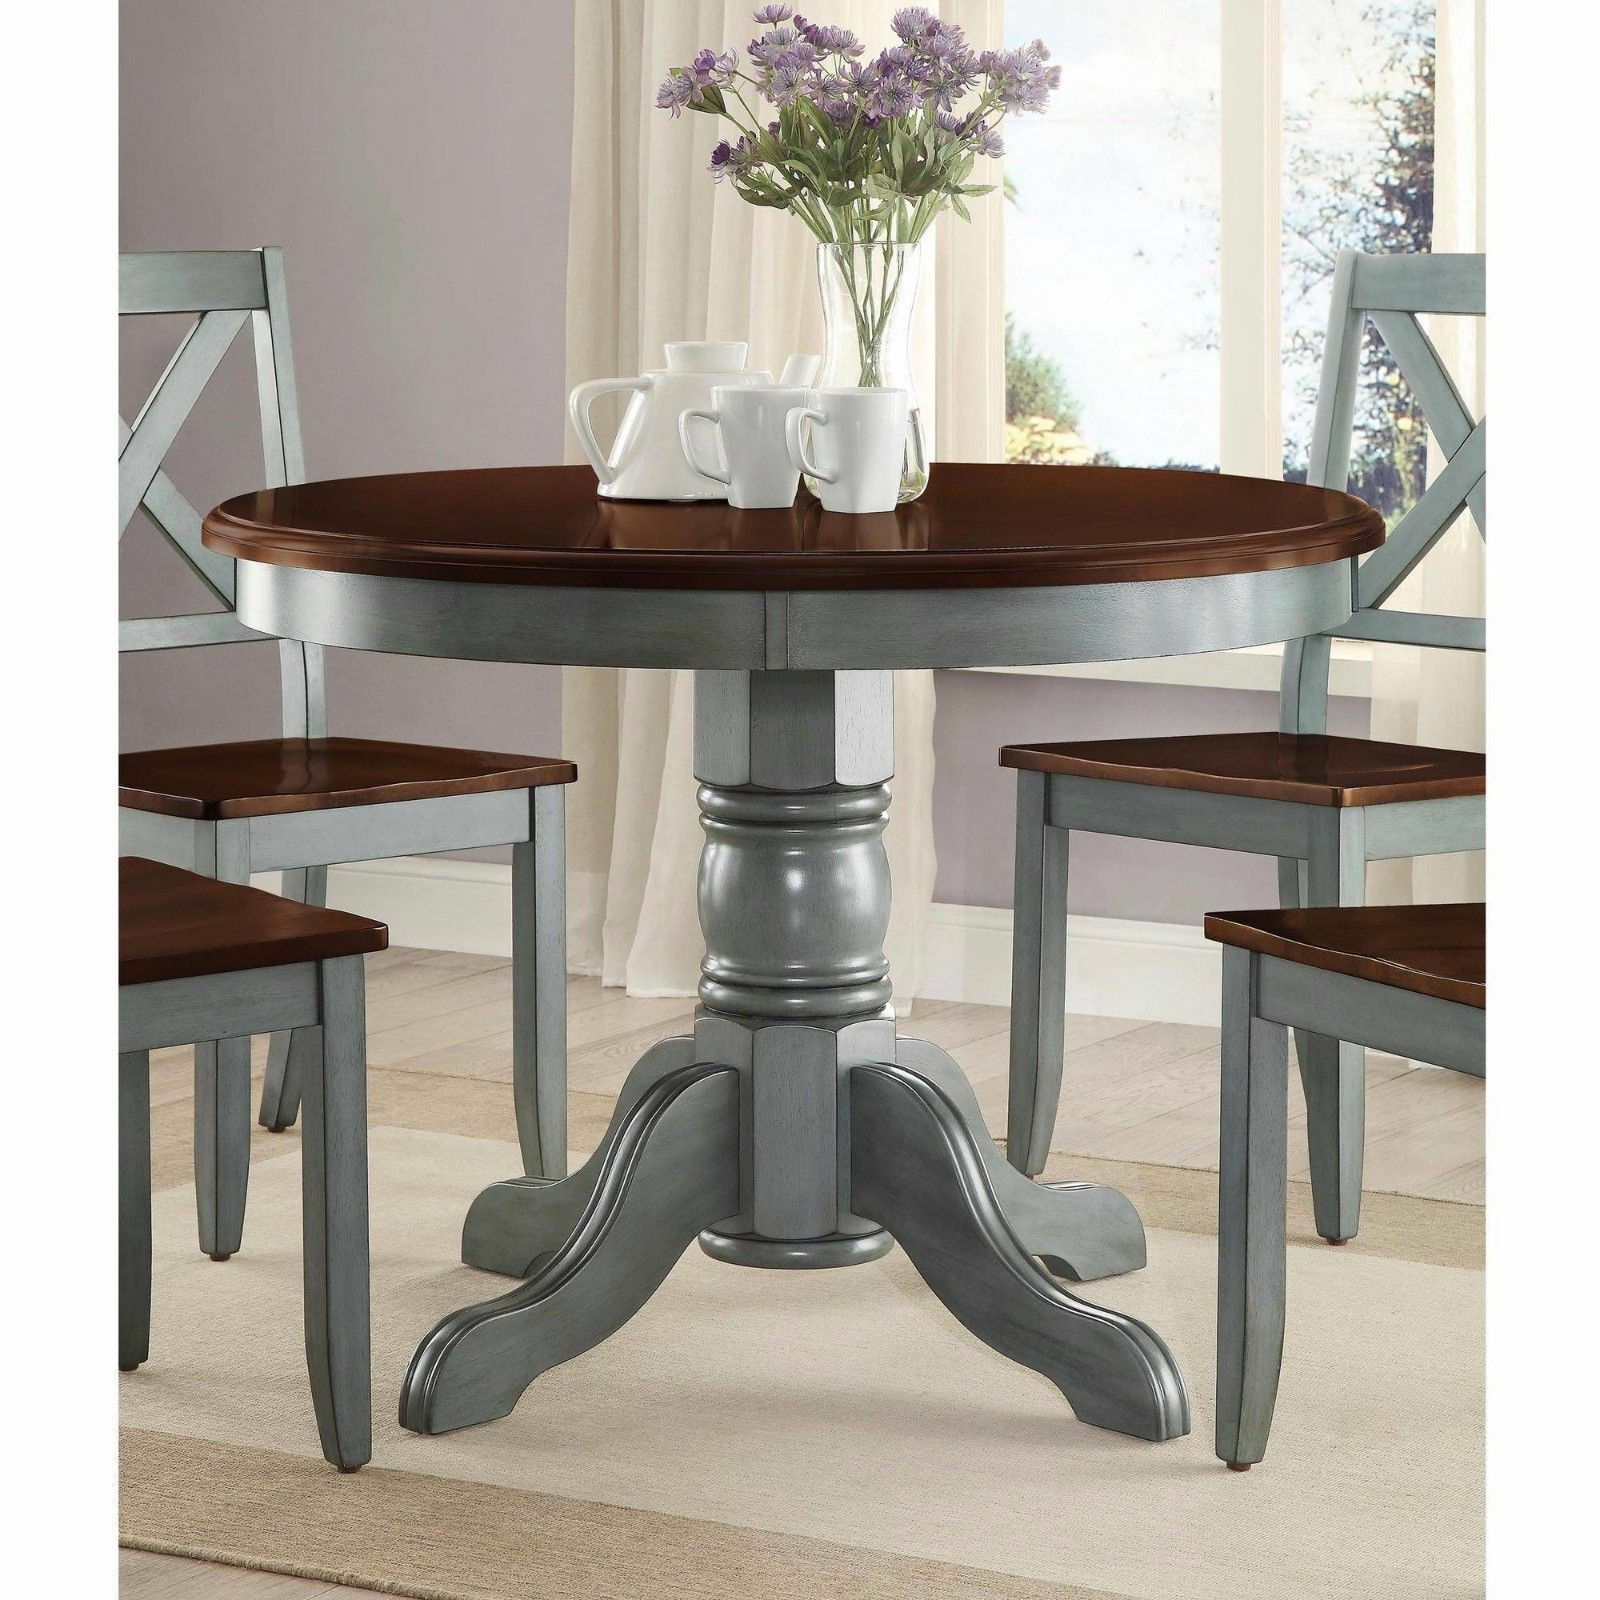 Farmhouse Solid Wood Dining Table Round Pedestal Antique Blue Brown Kitchen For Sale Online